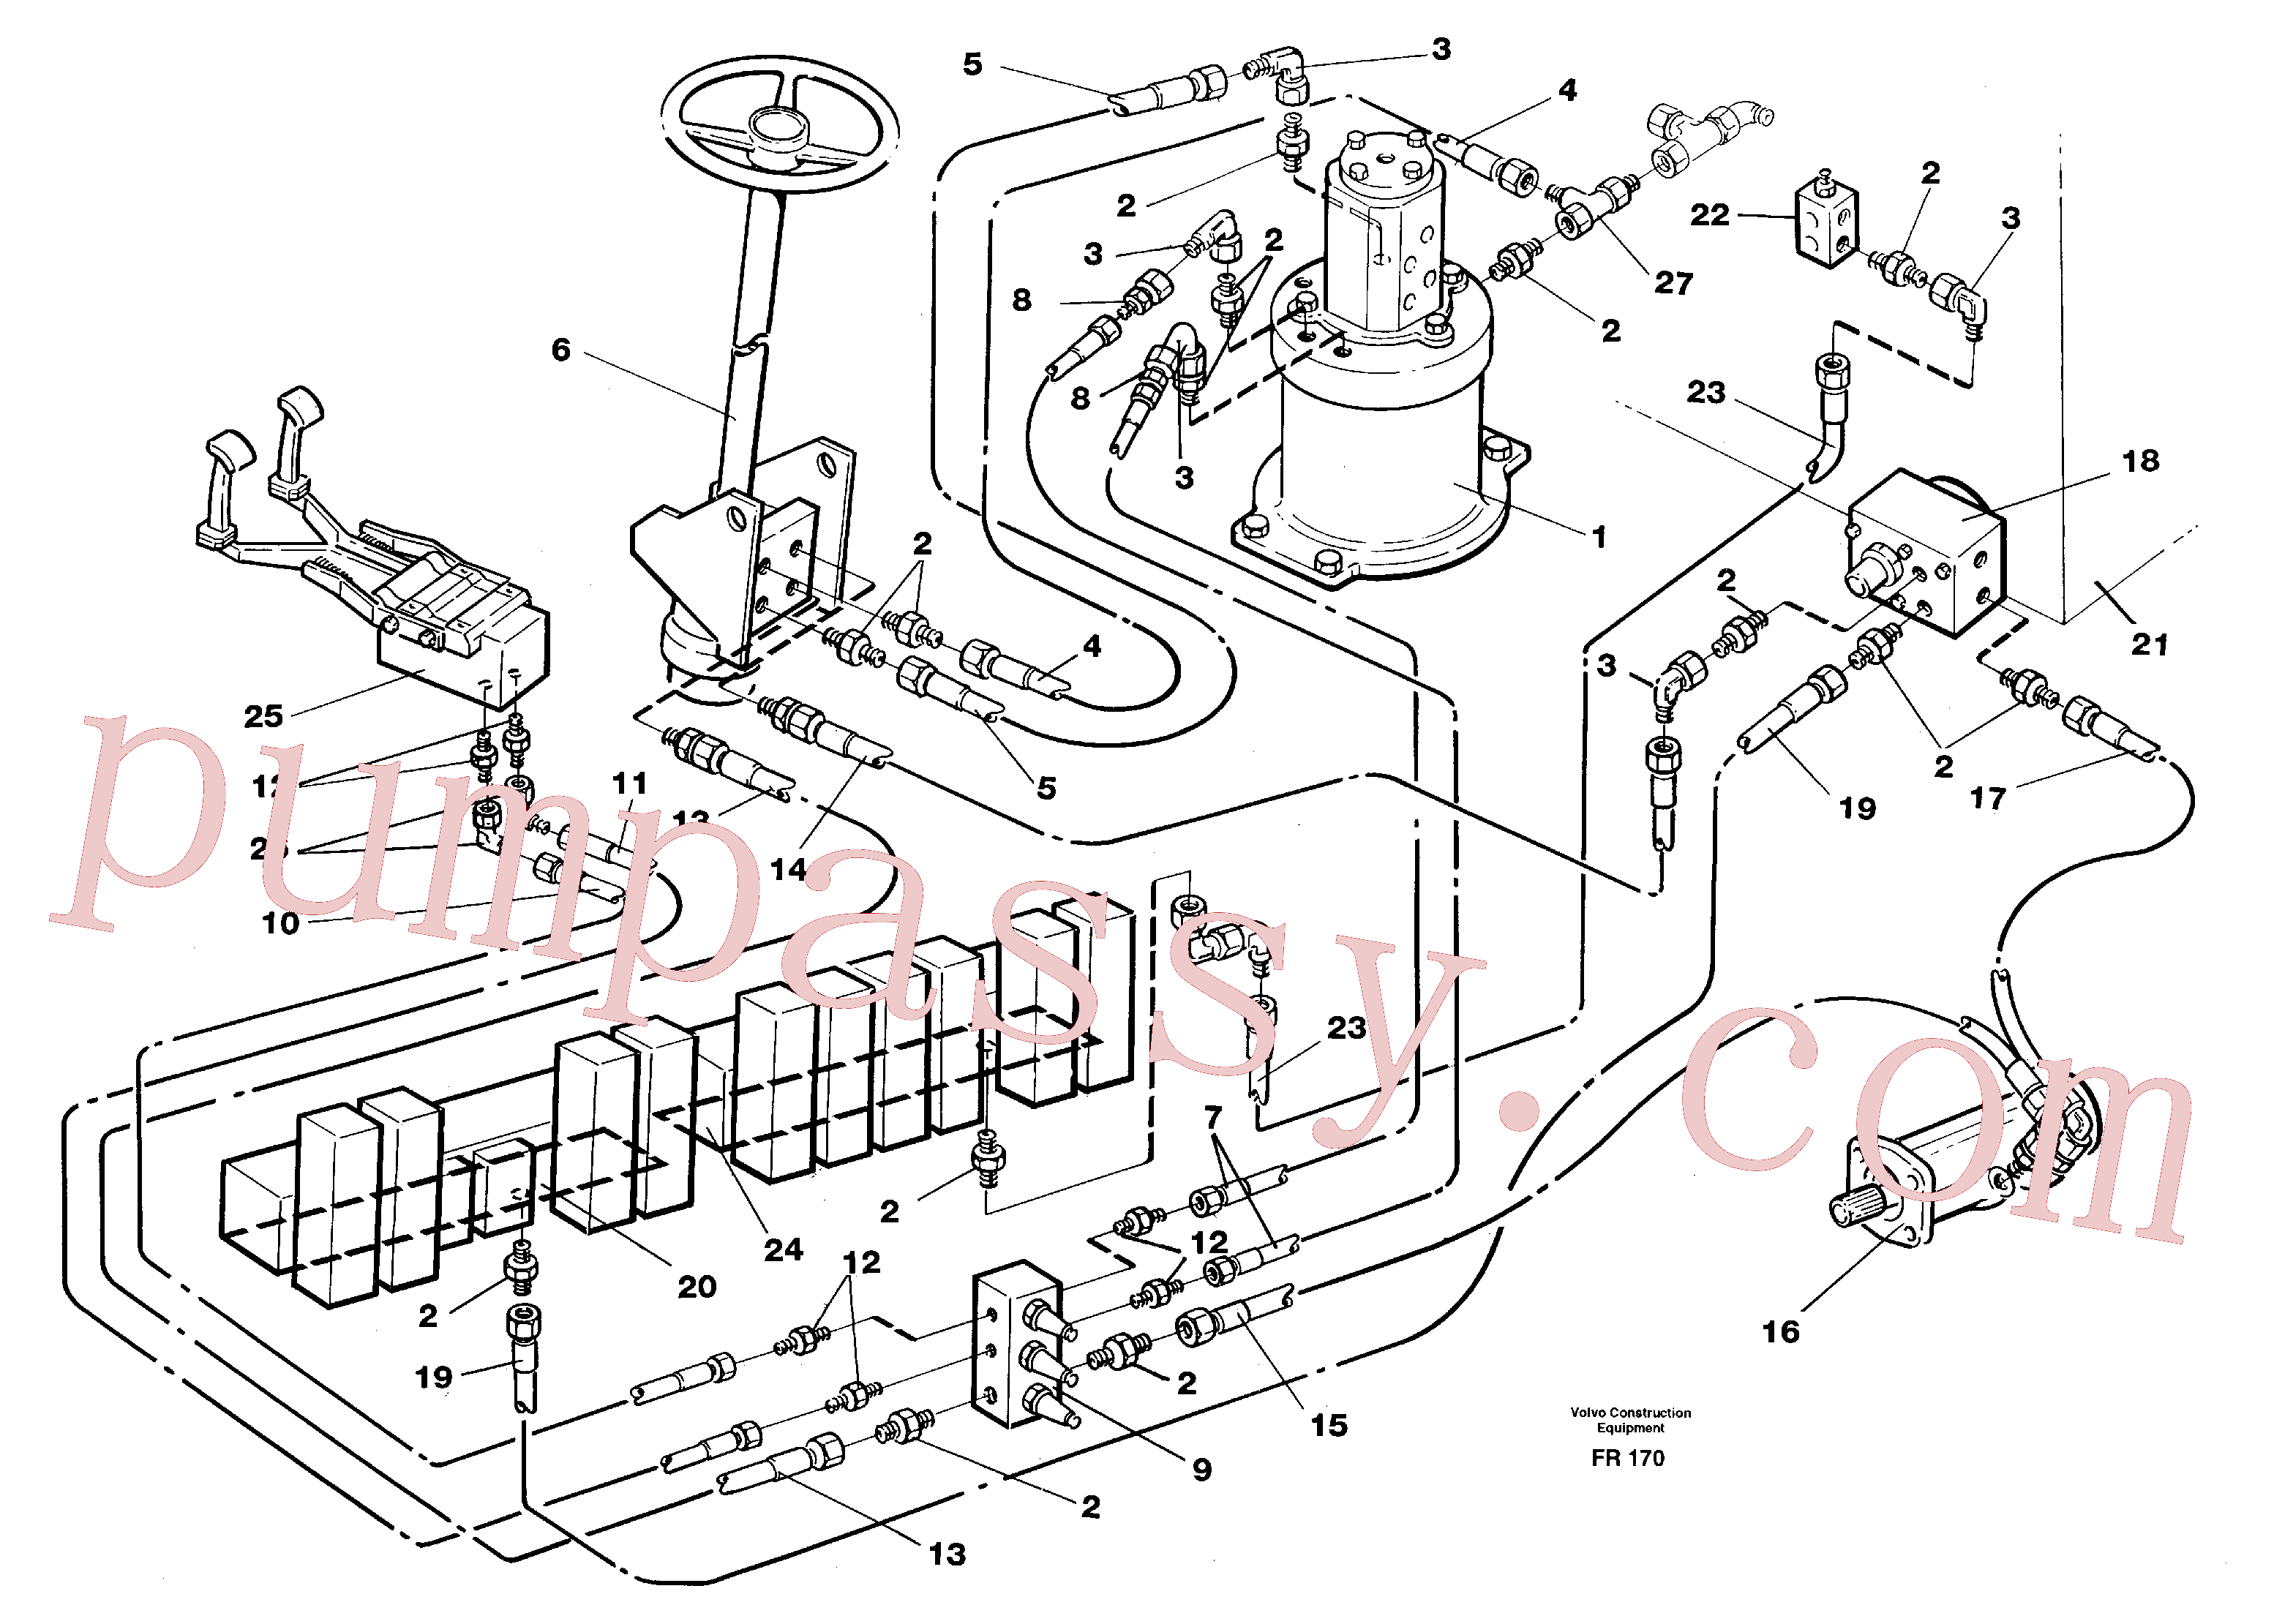 VOE14245621 for Volvo Steering system in superstructure(FR170 assembly)